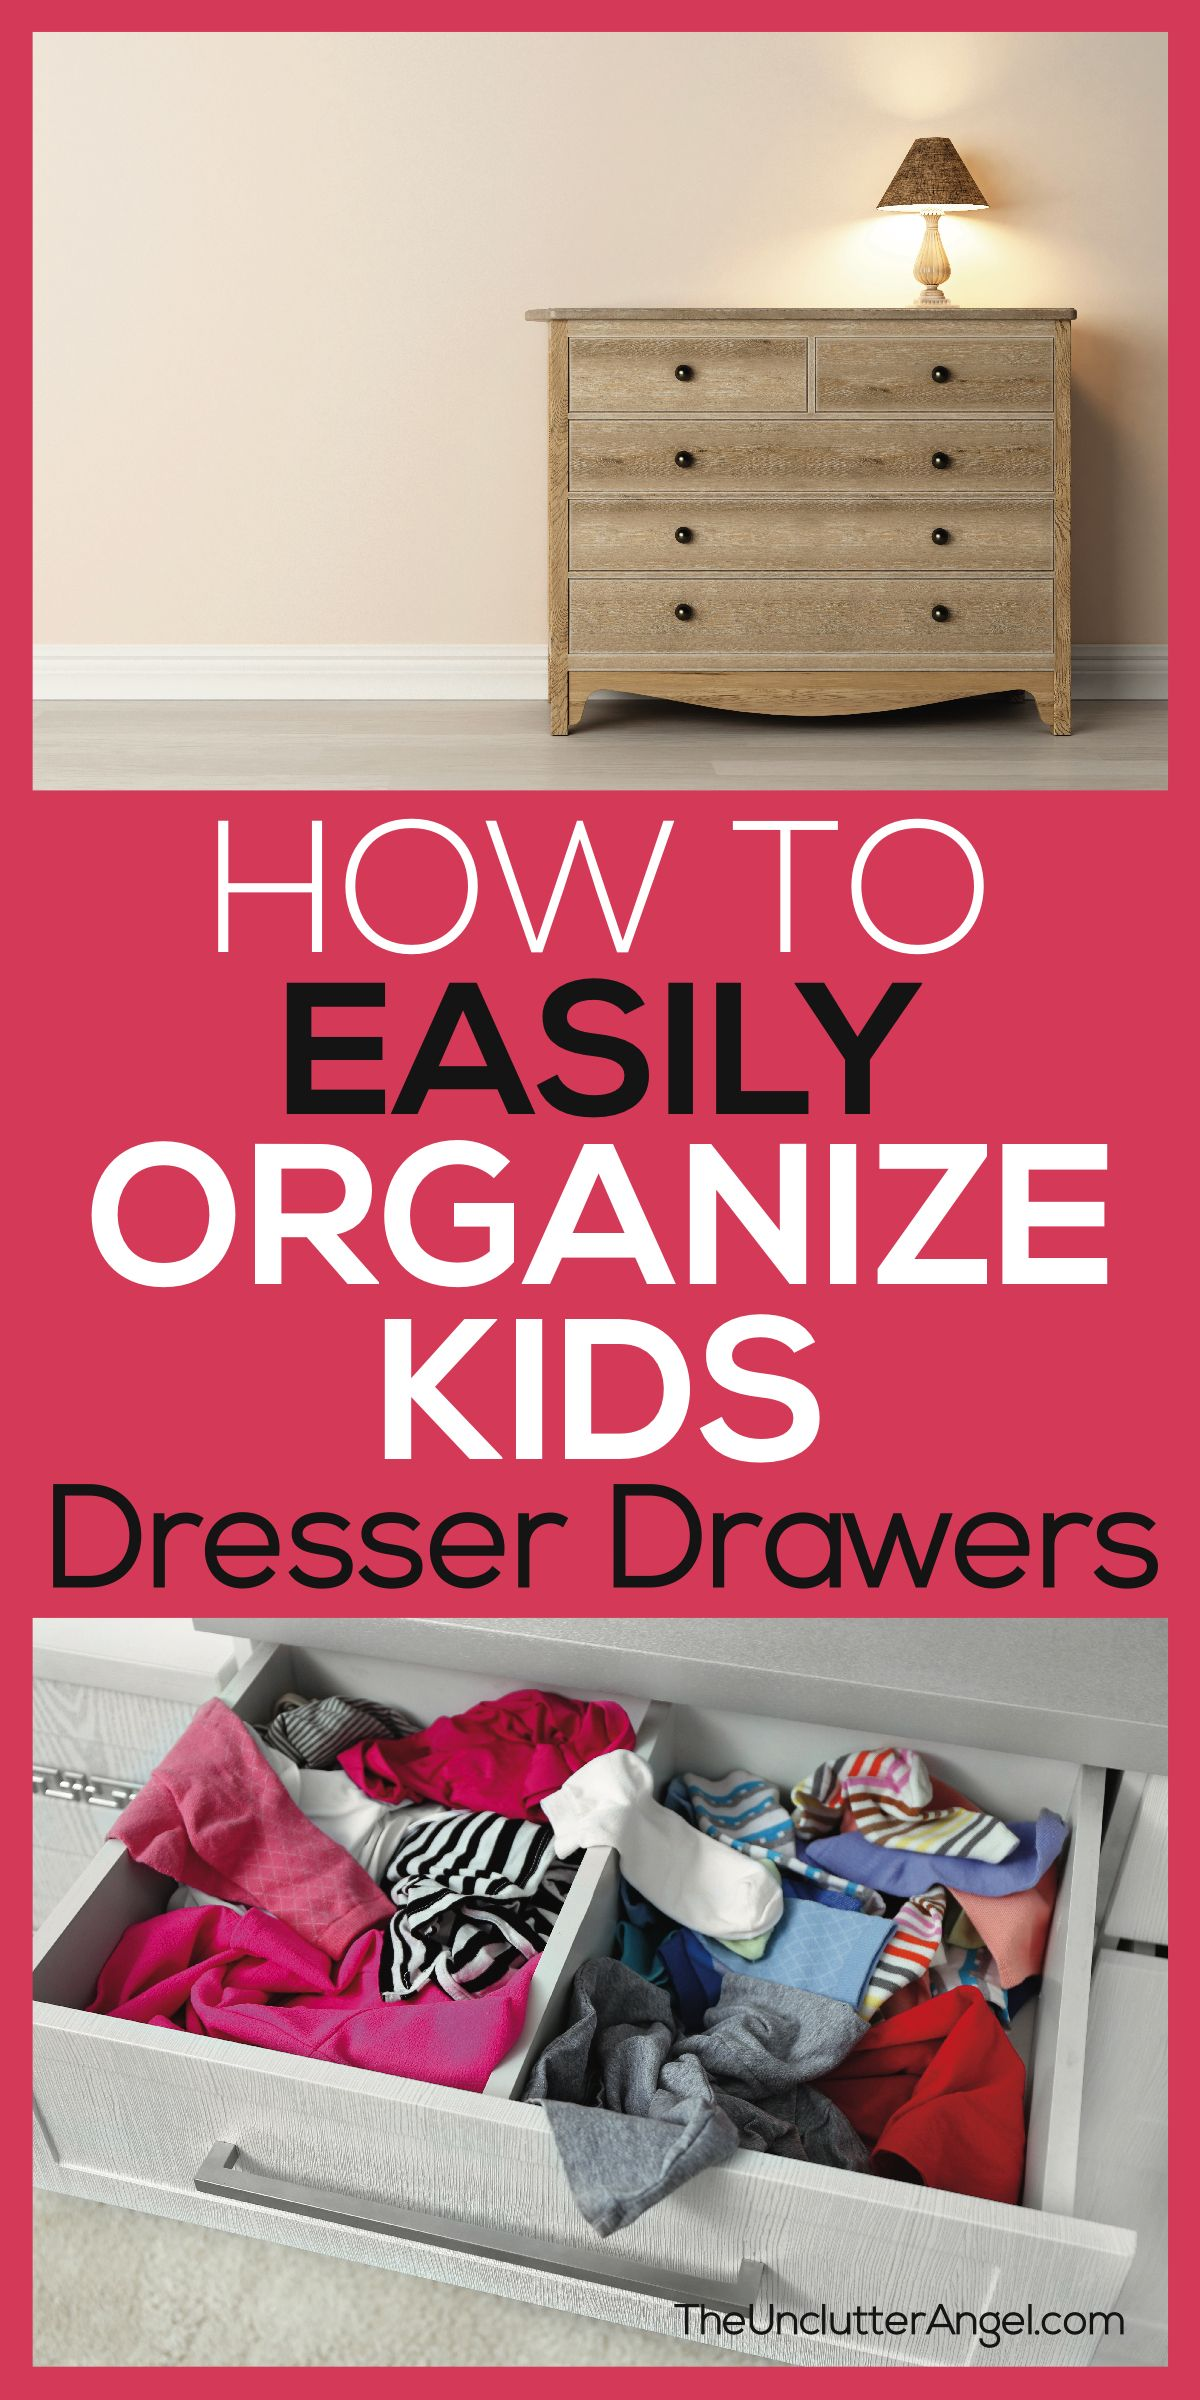 3 Steps To Easily Organize Kids Dresser Drawers The Unclutter